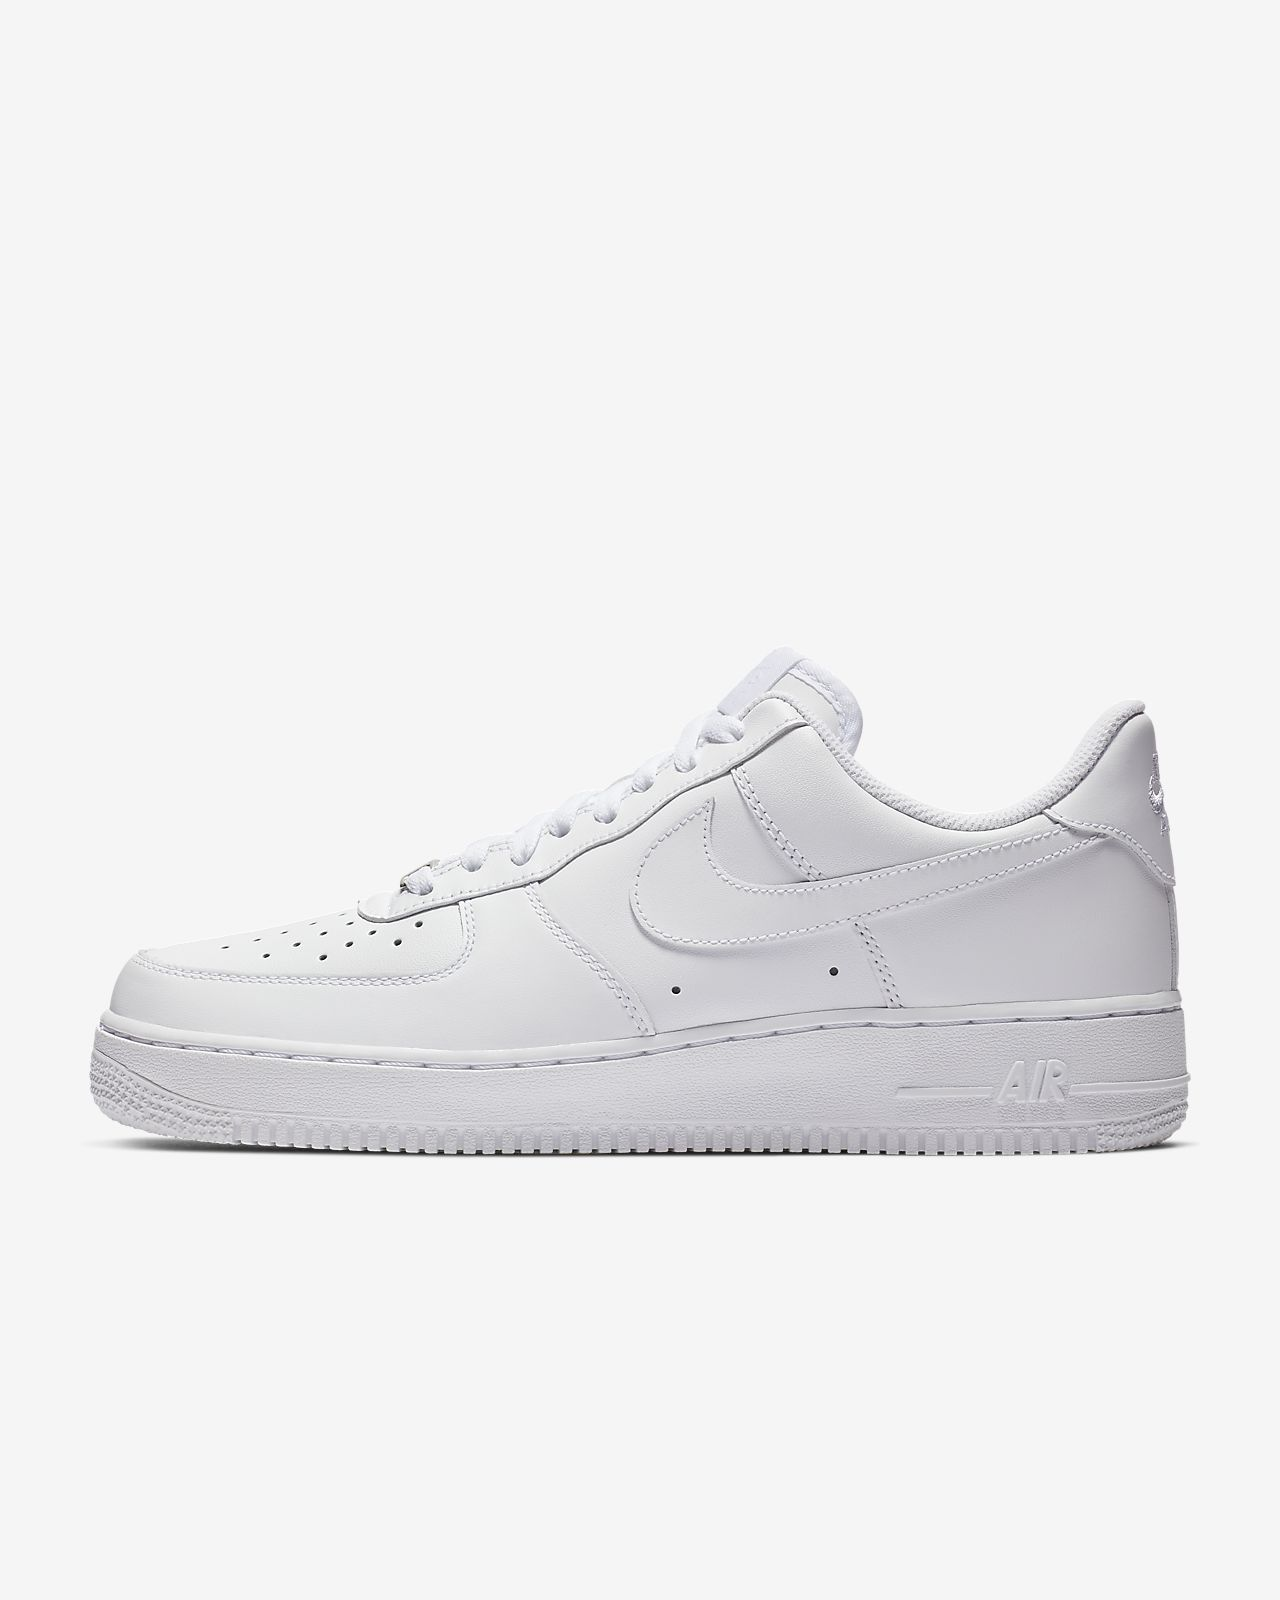 Women's Nike Air Force 1